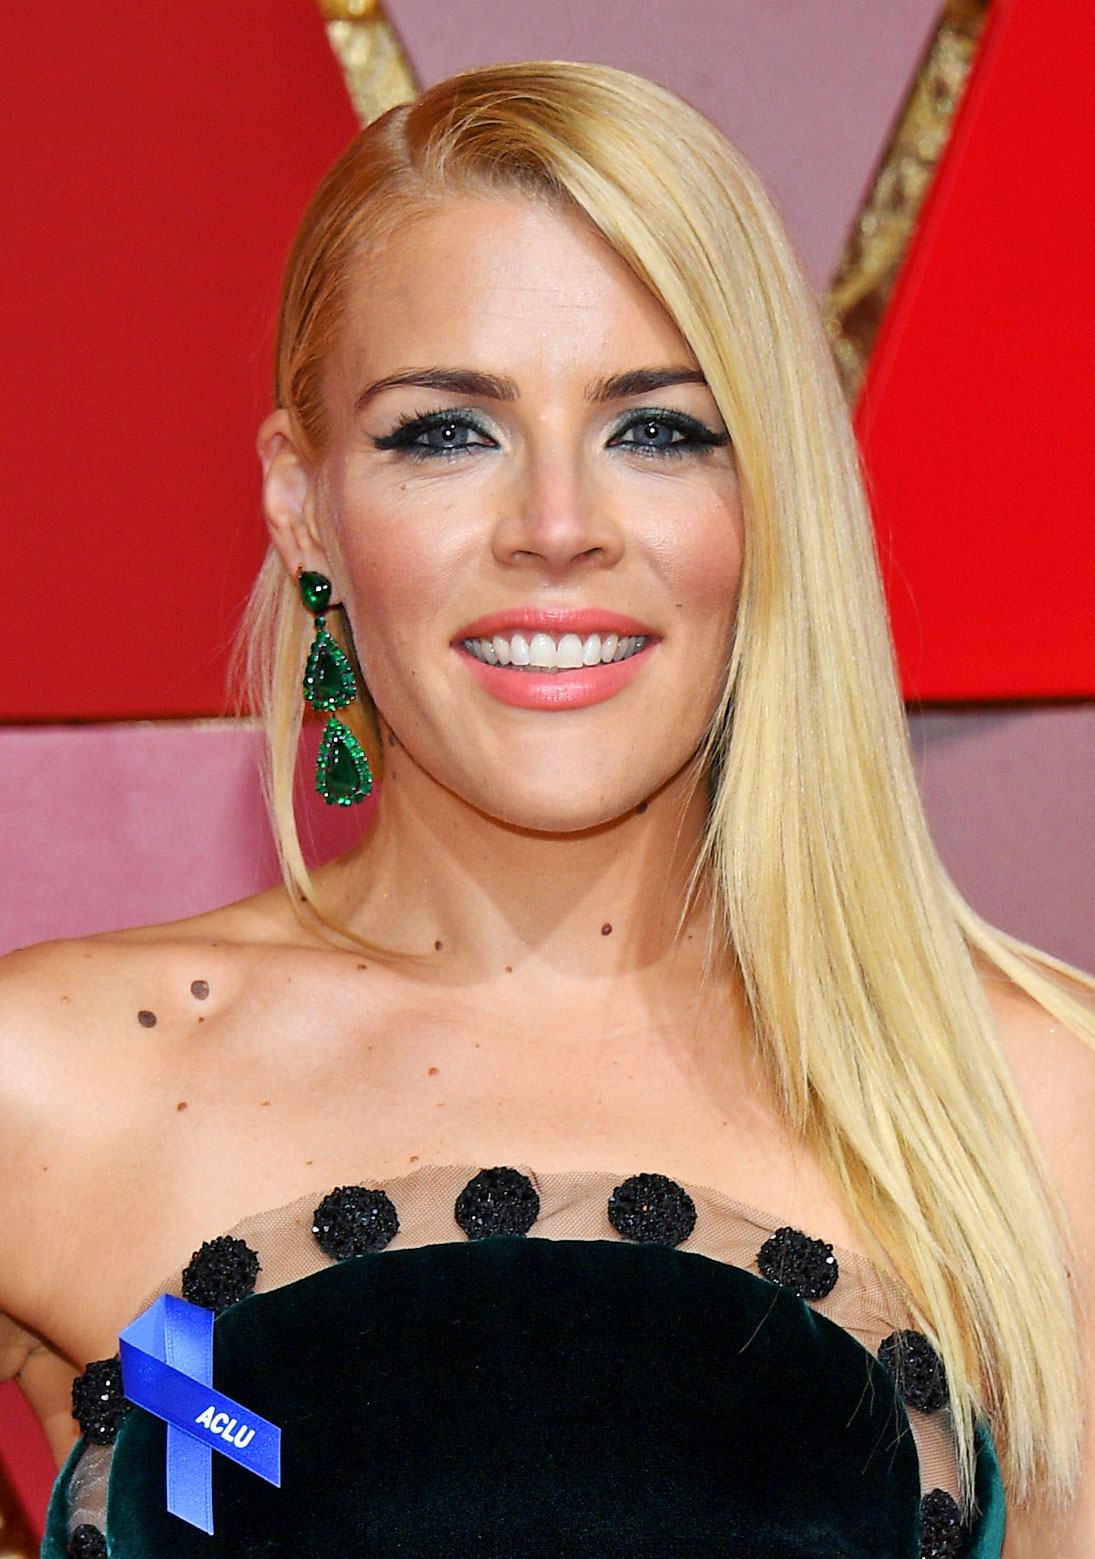 busy philipps 8c5b47a4 eeba 468c ae21 2b9c7587c163 40+ Photos Of Celebrities They Would Not Want You To See